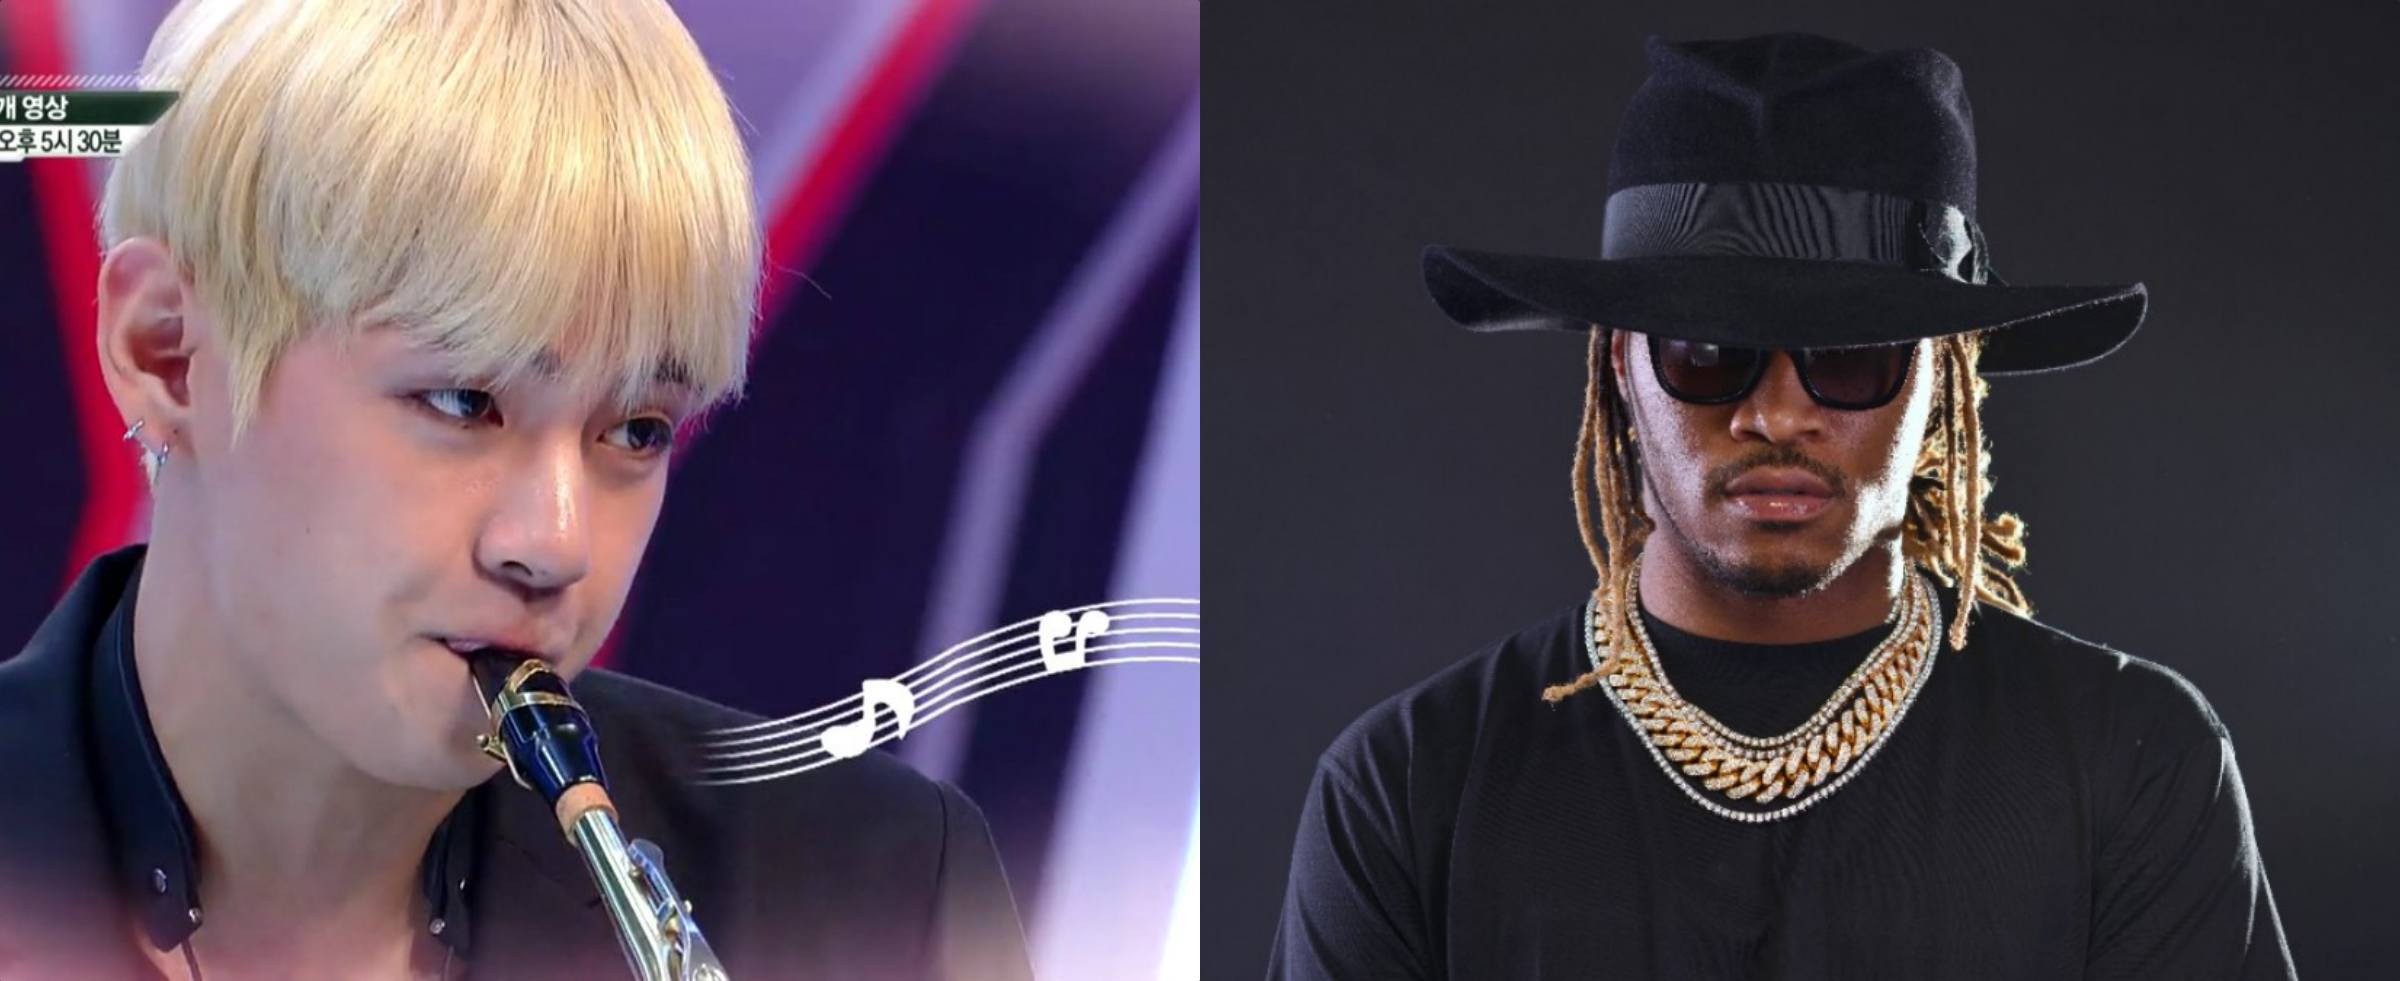 American Rapper Future Shares Video Of BTSs V and Jimin